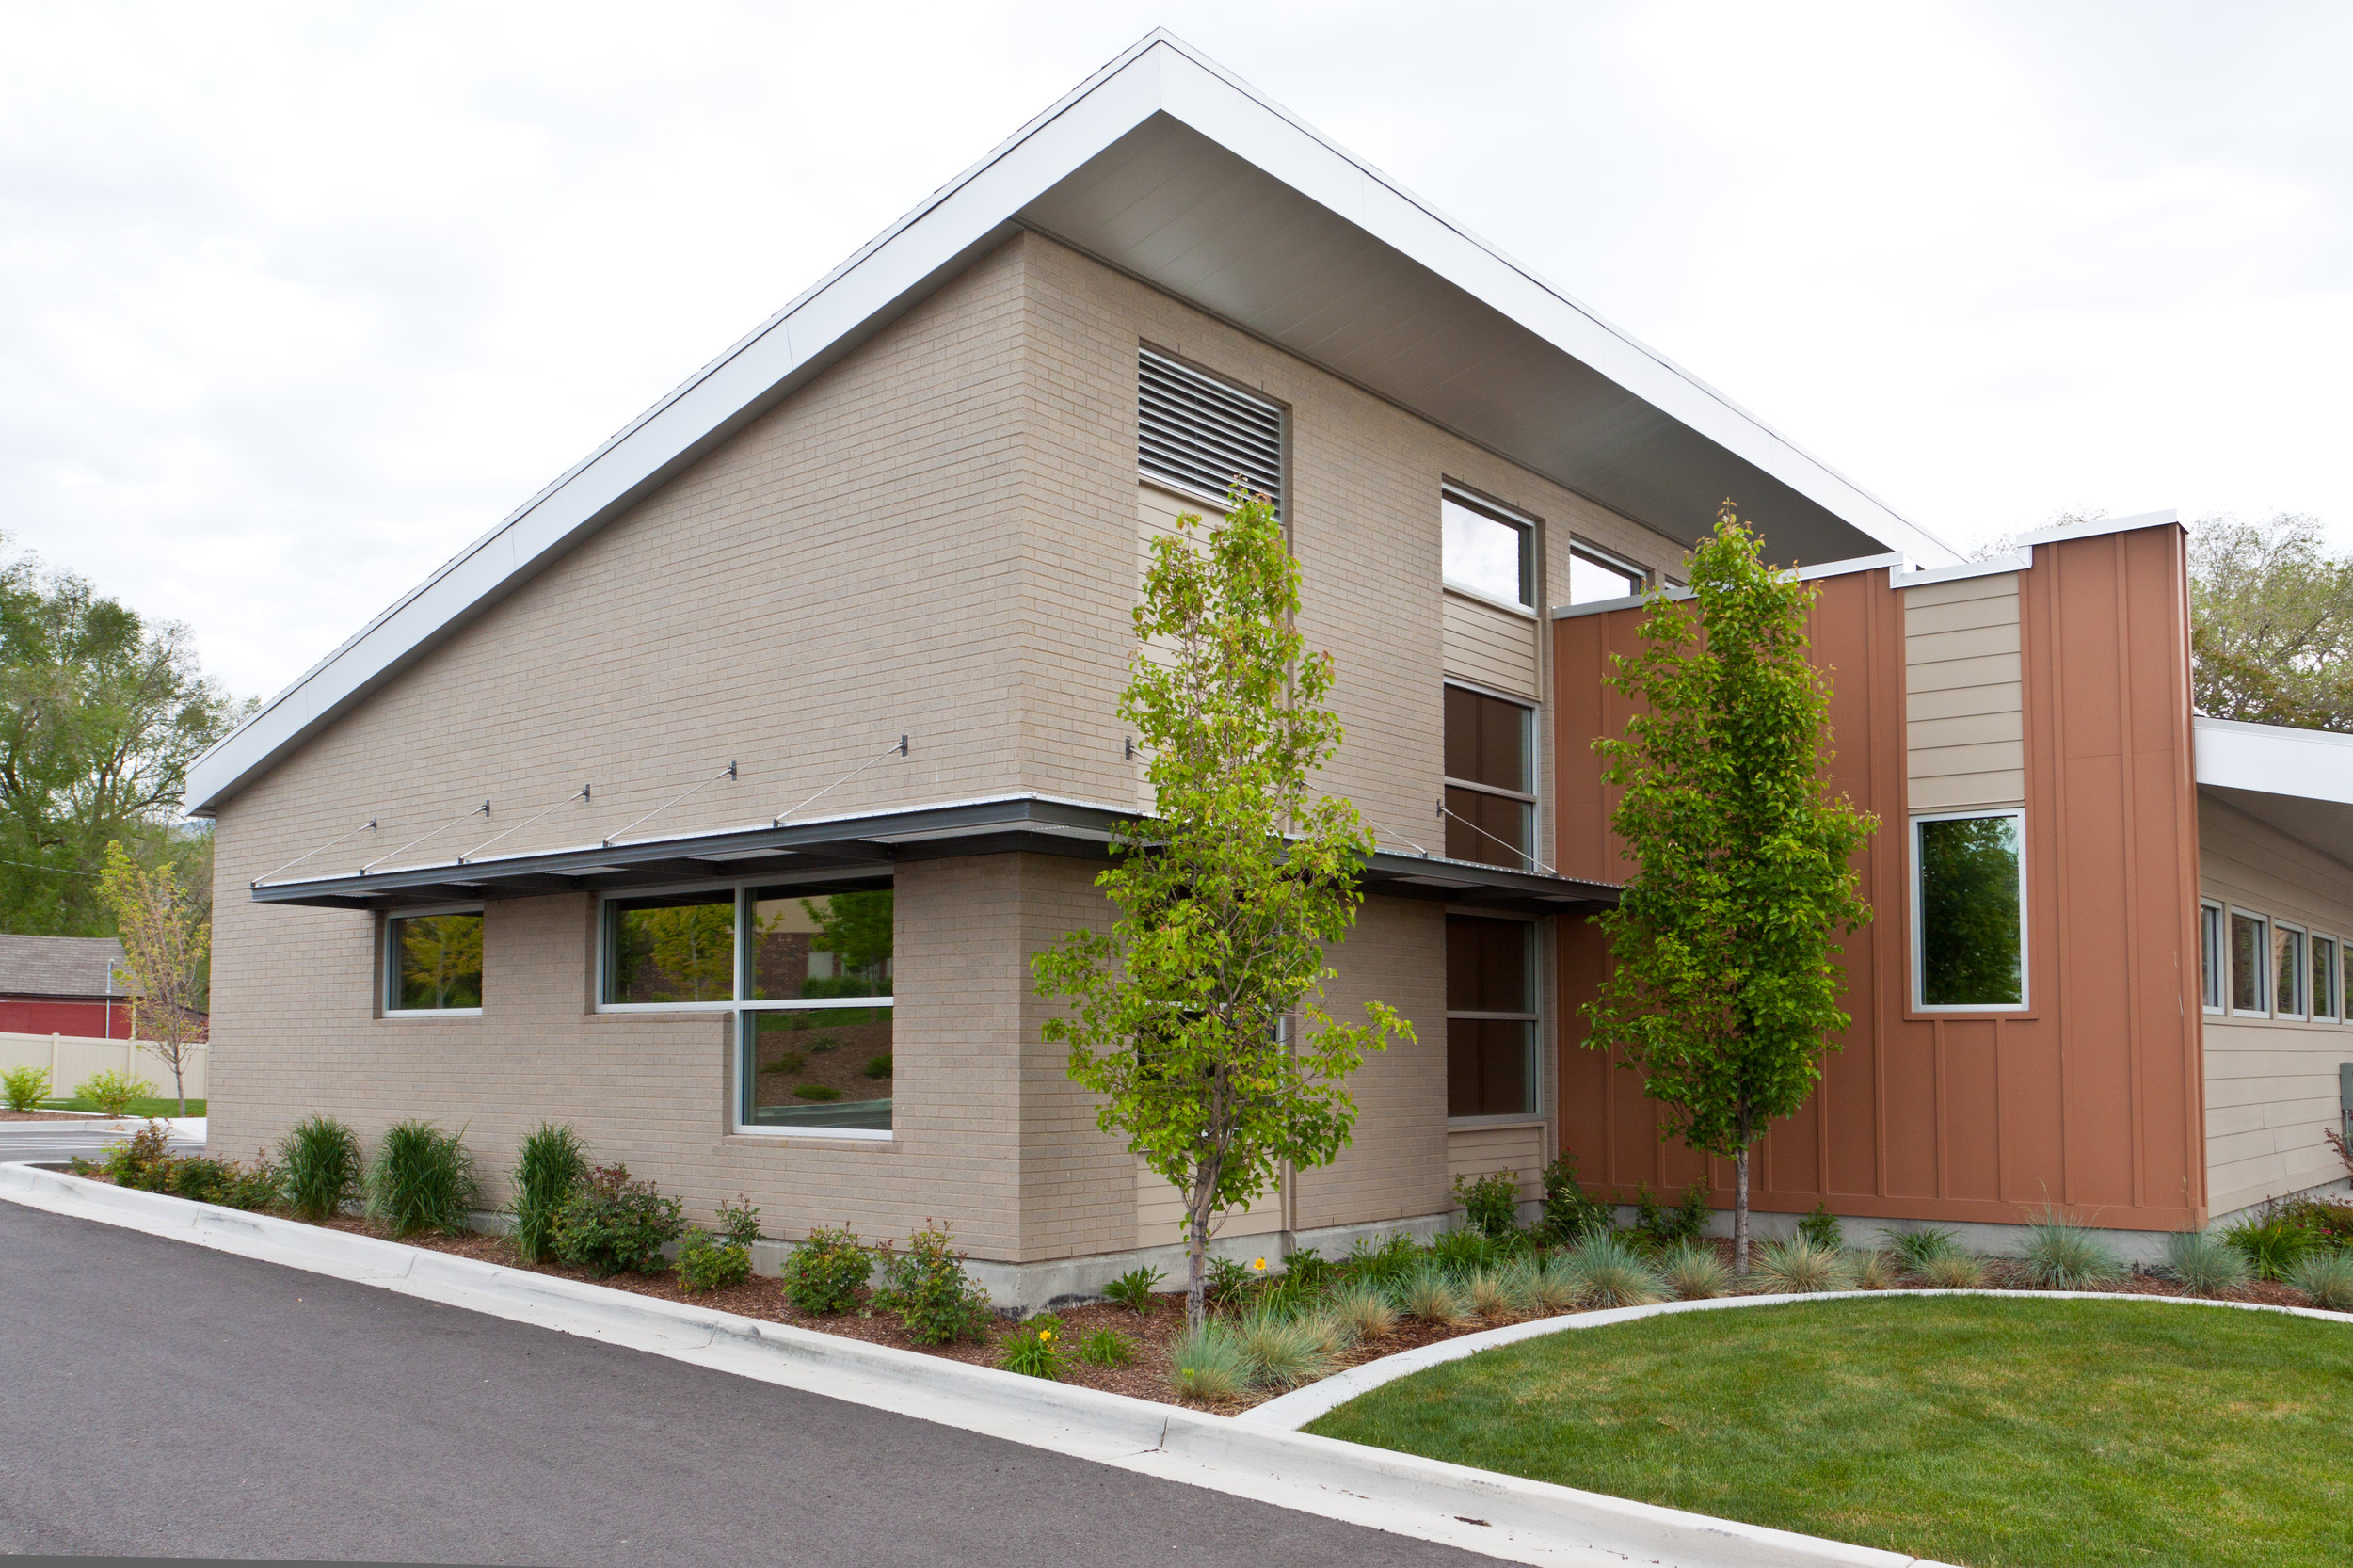 OGDEN HOUSING AUTHORITY OFFICE BUILDING